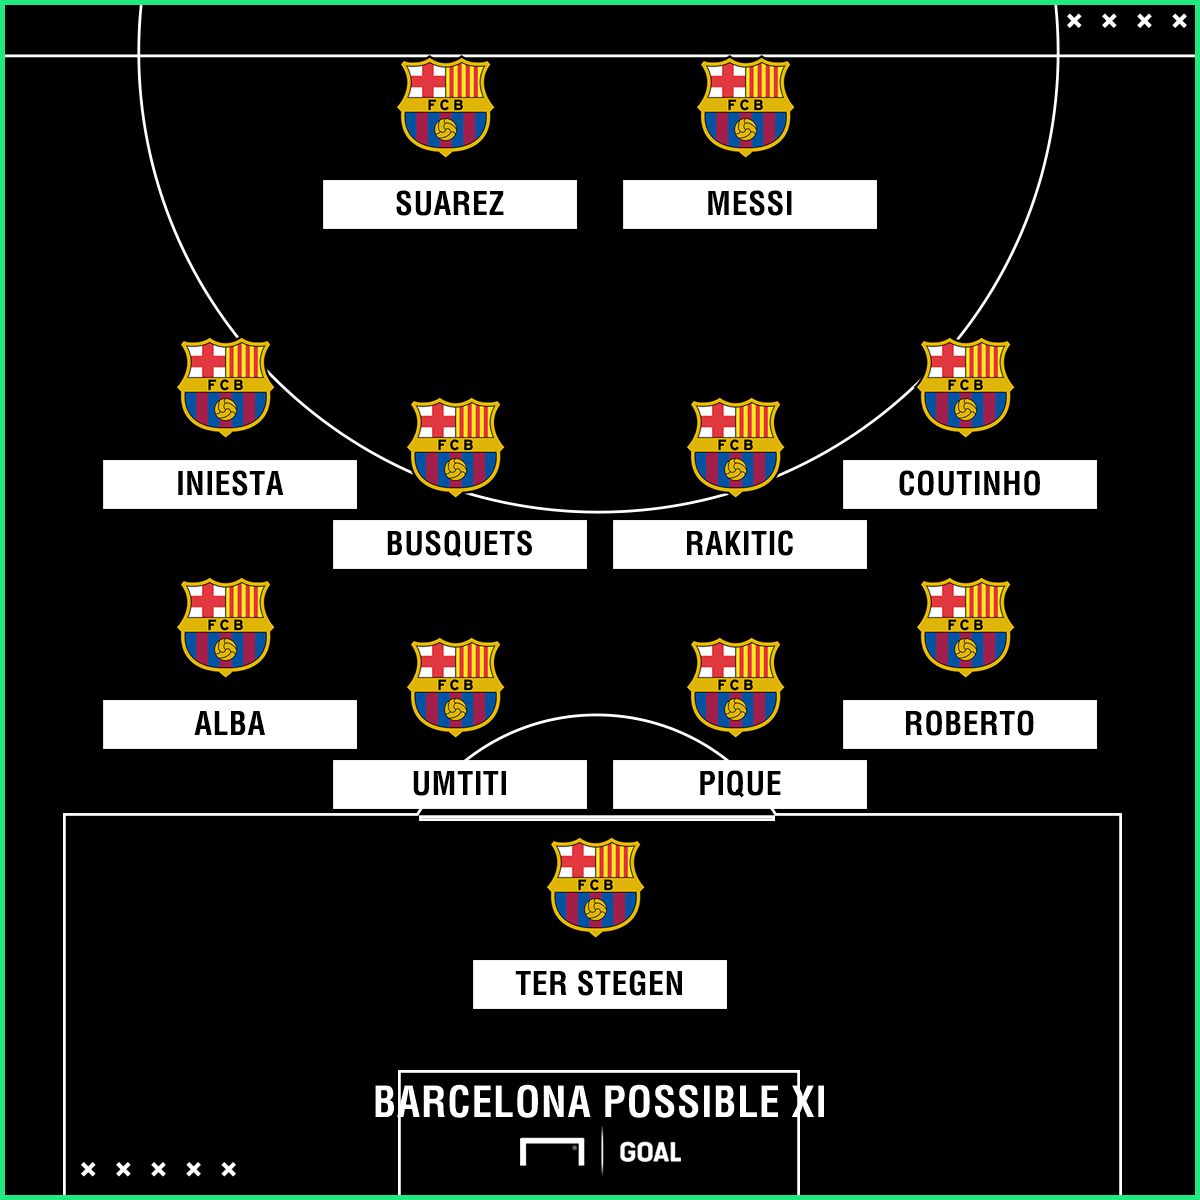 Barcelona possible Valencia